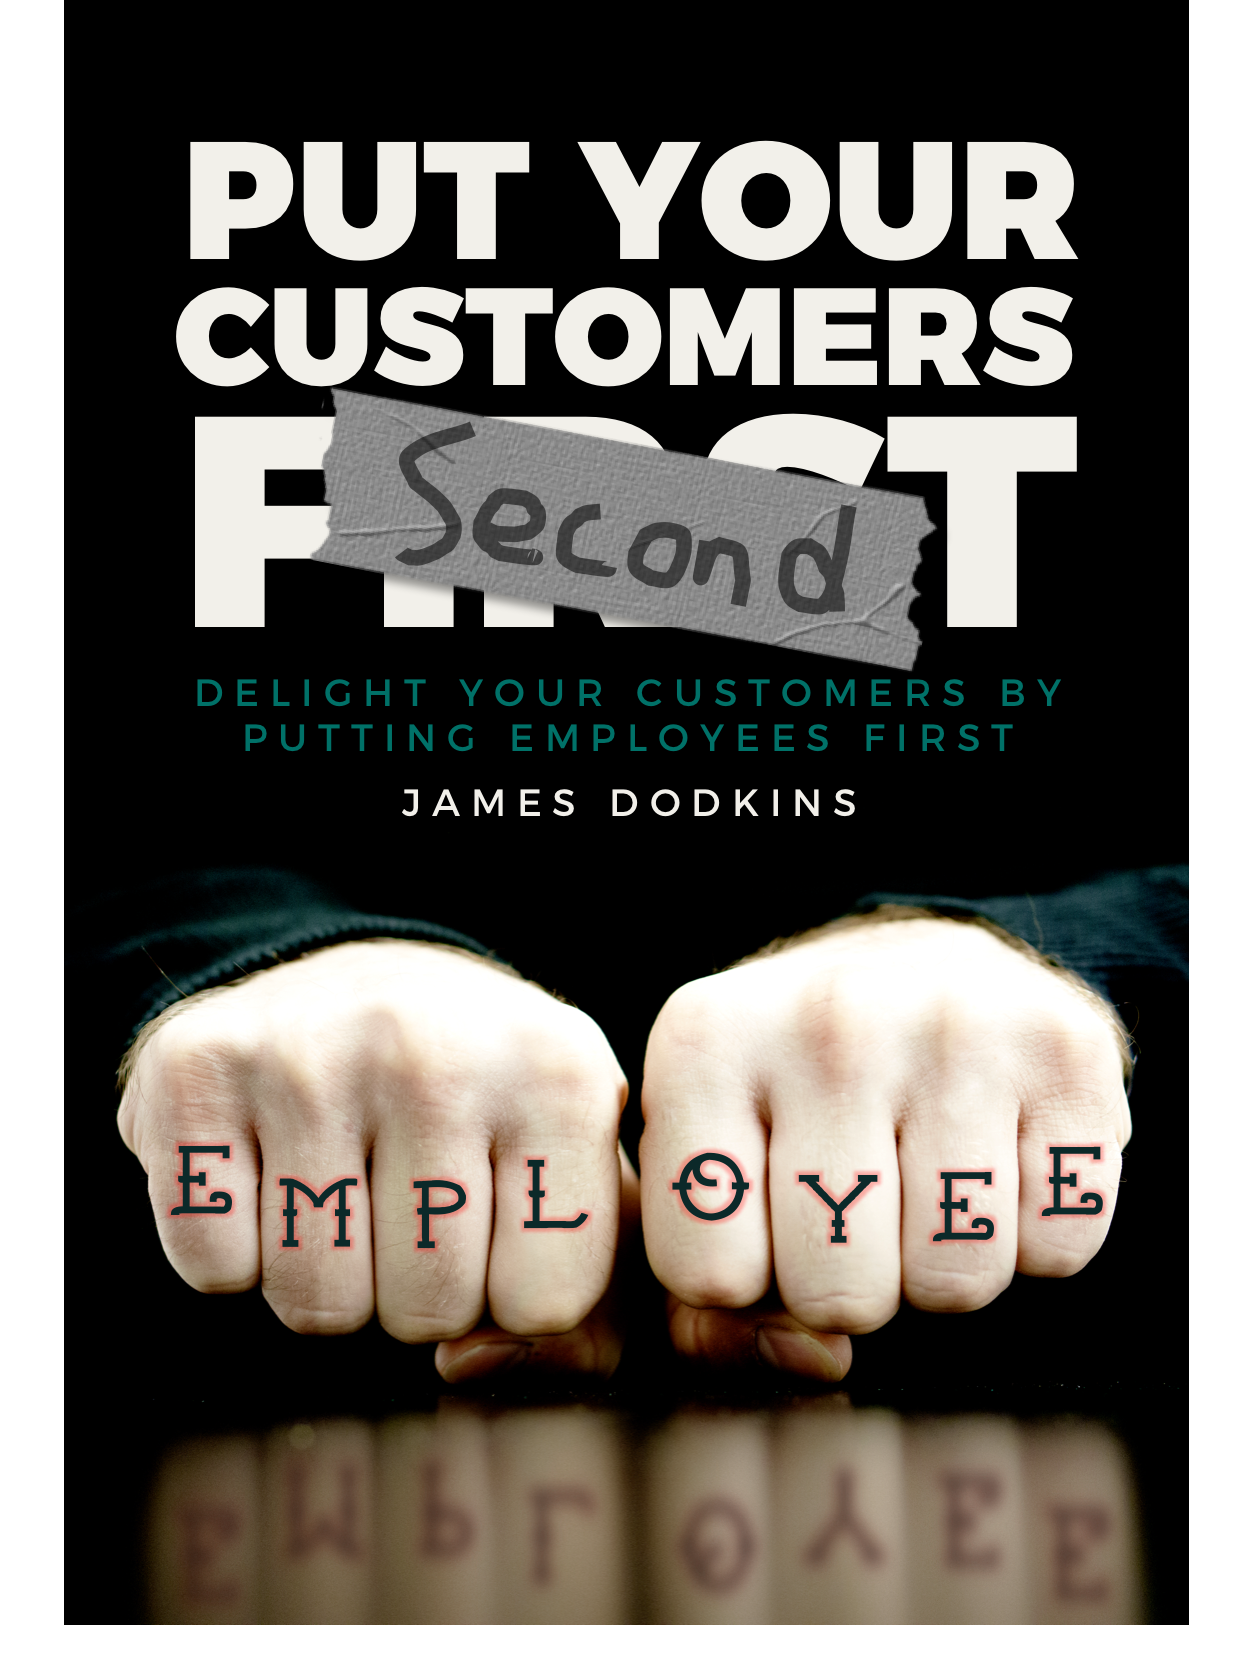 jasmes dodkins put your customers second